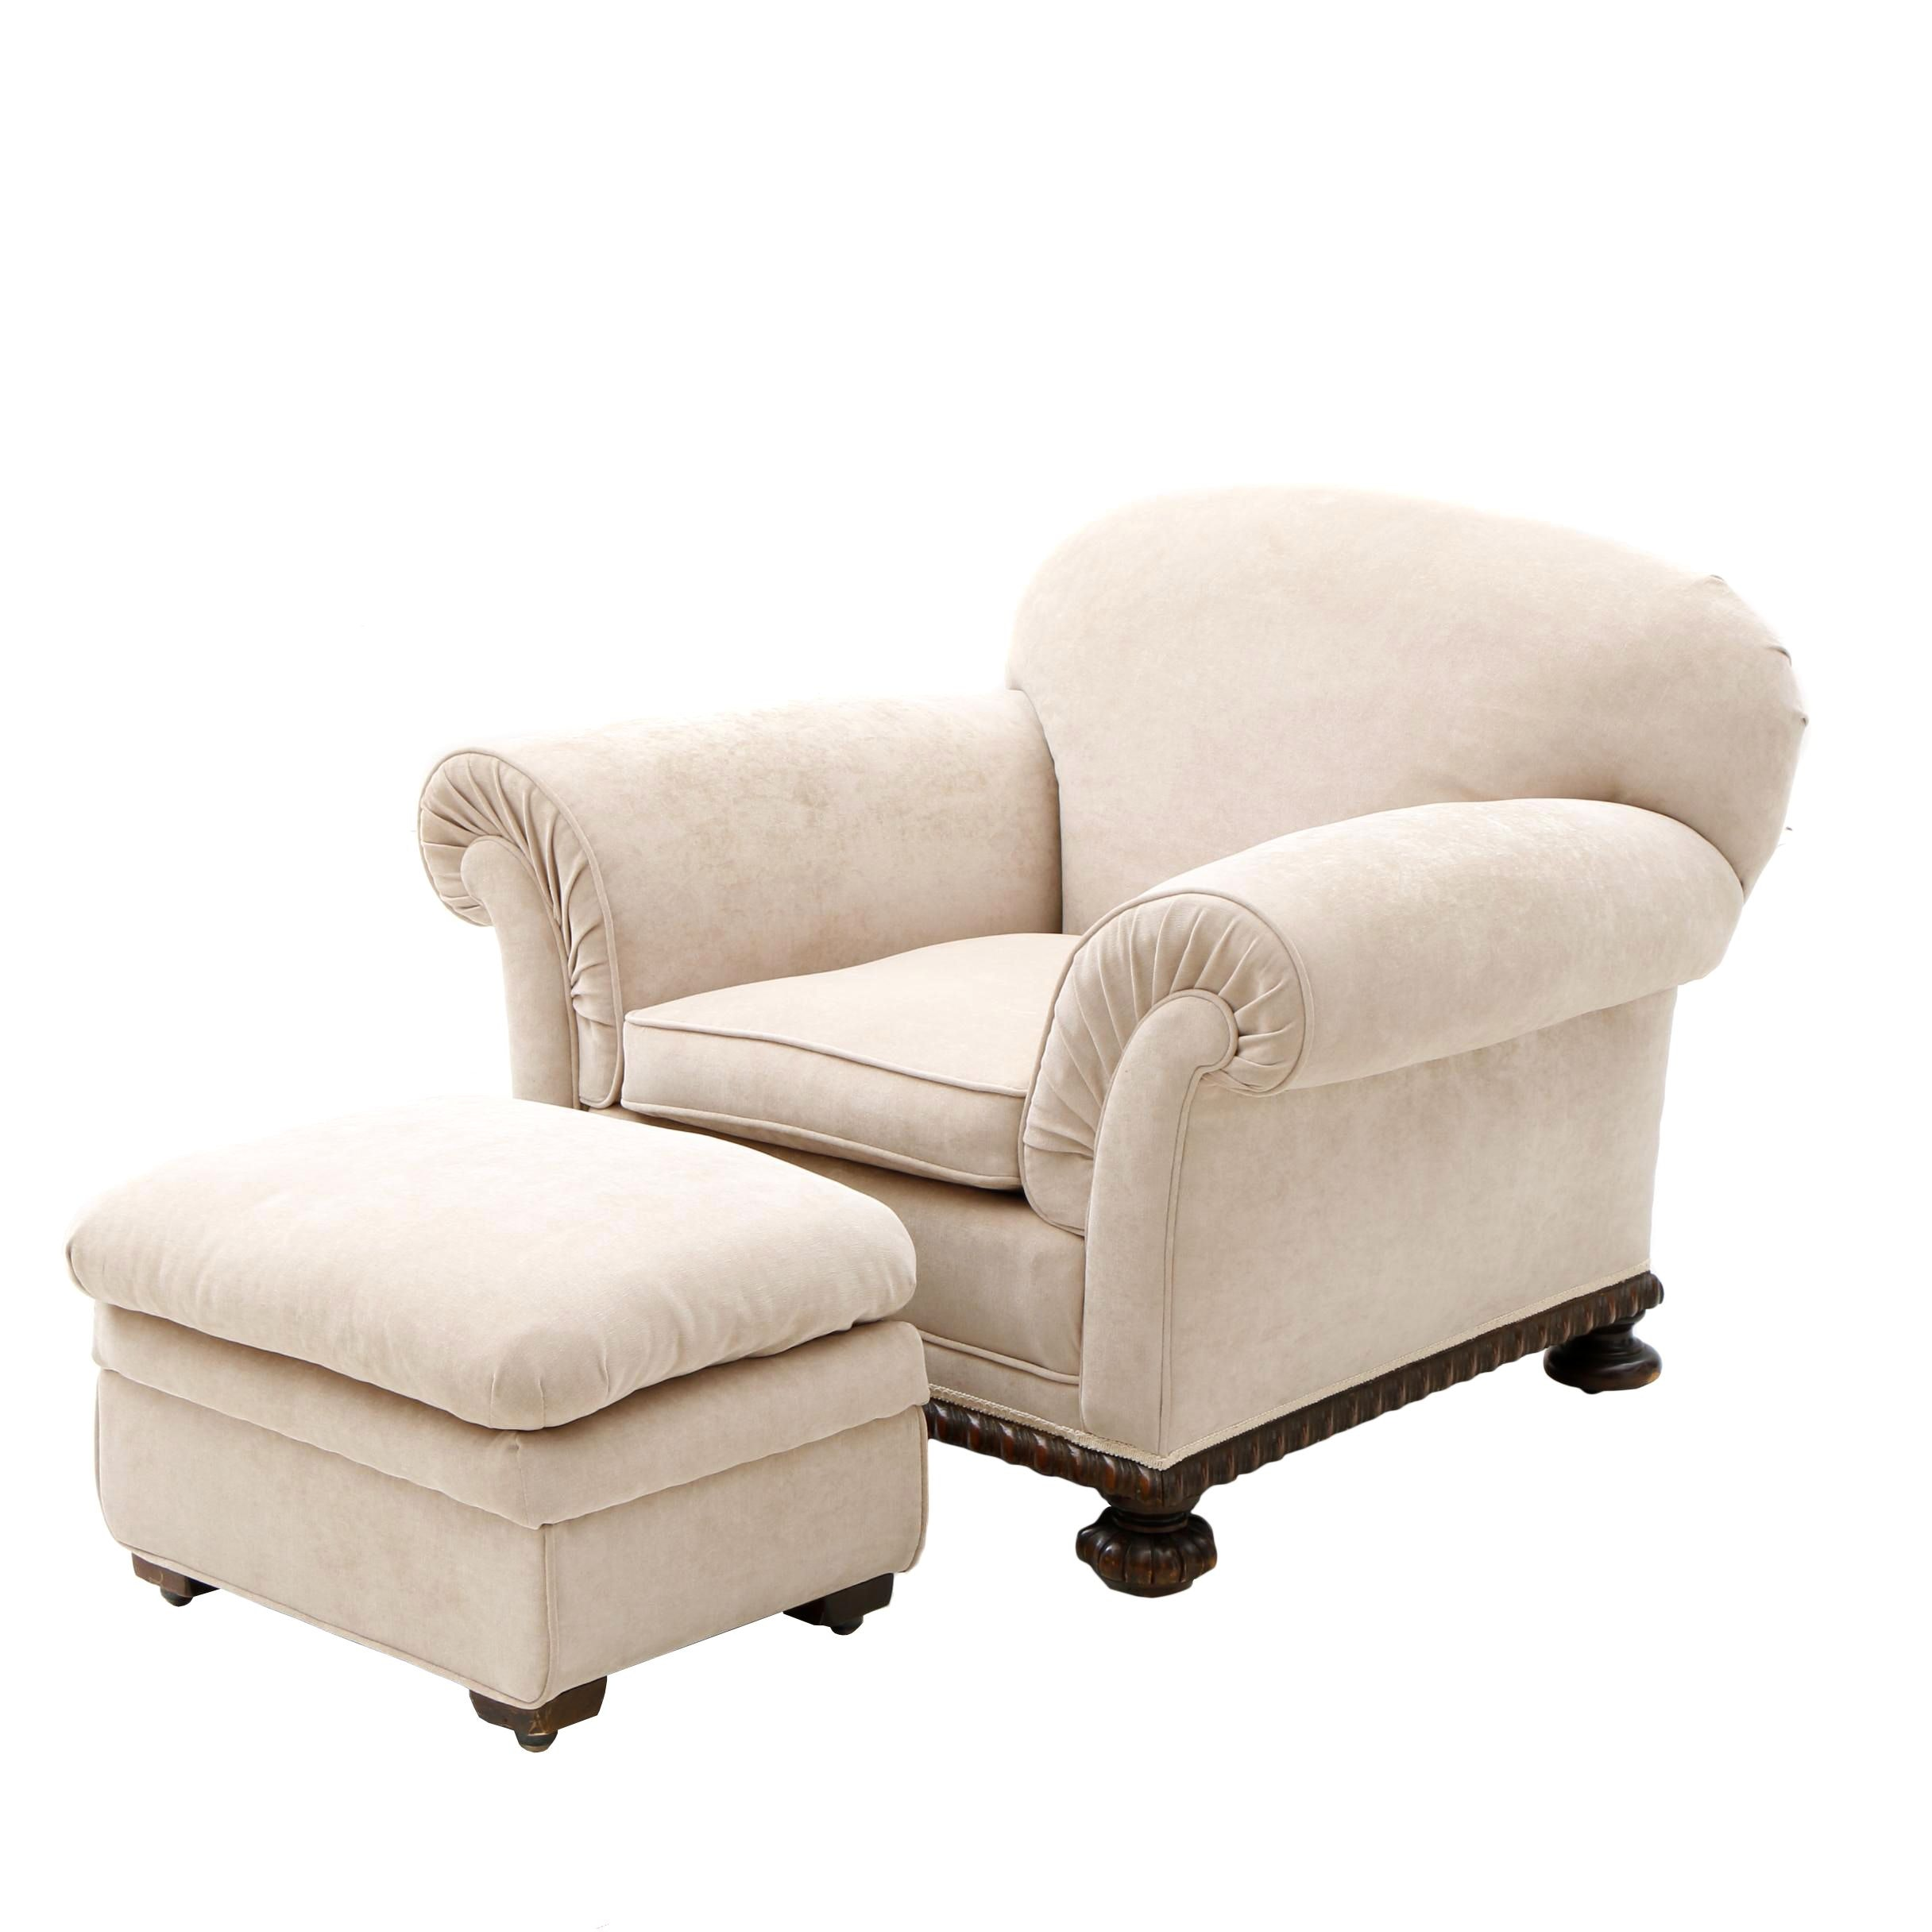 Beige Upholstered Armchair with Ottoman